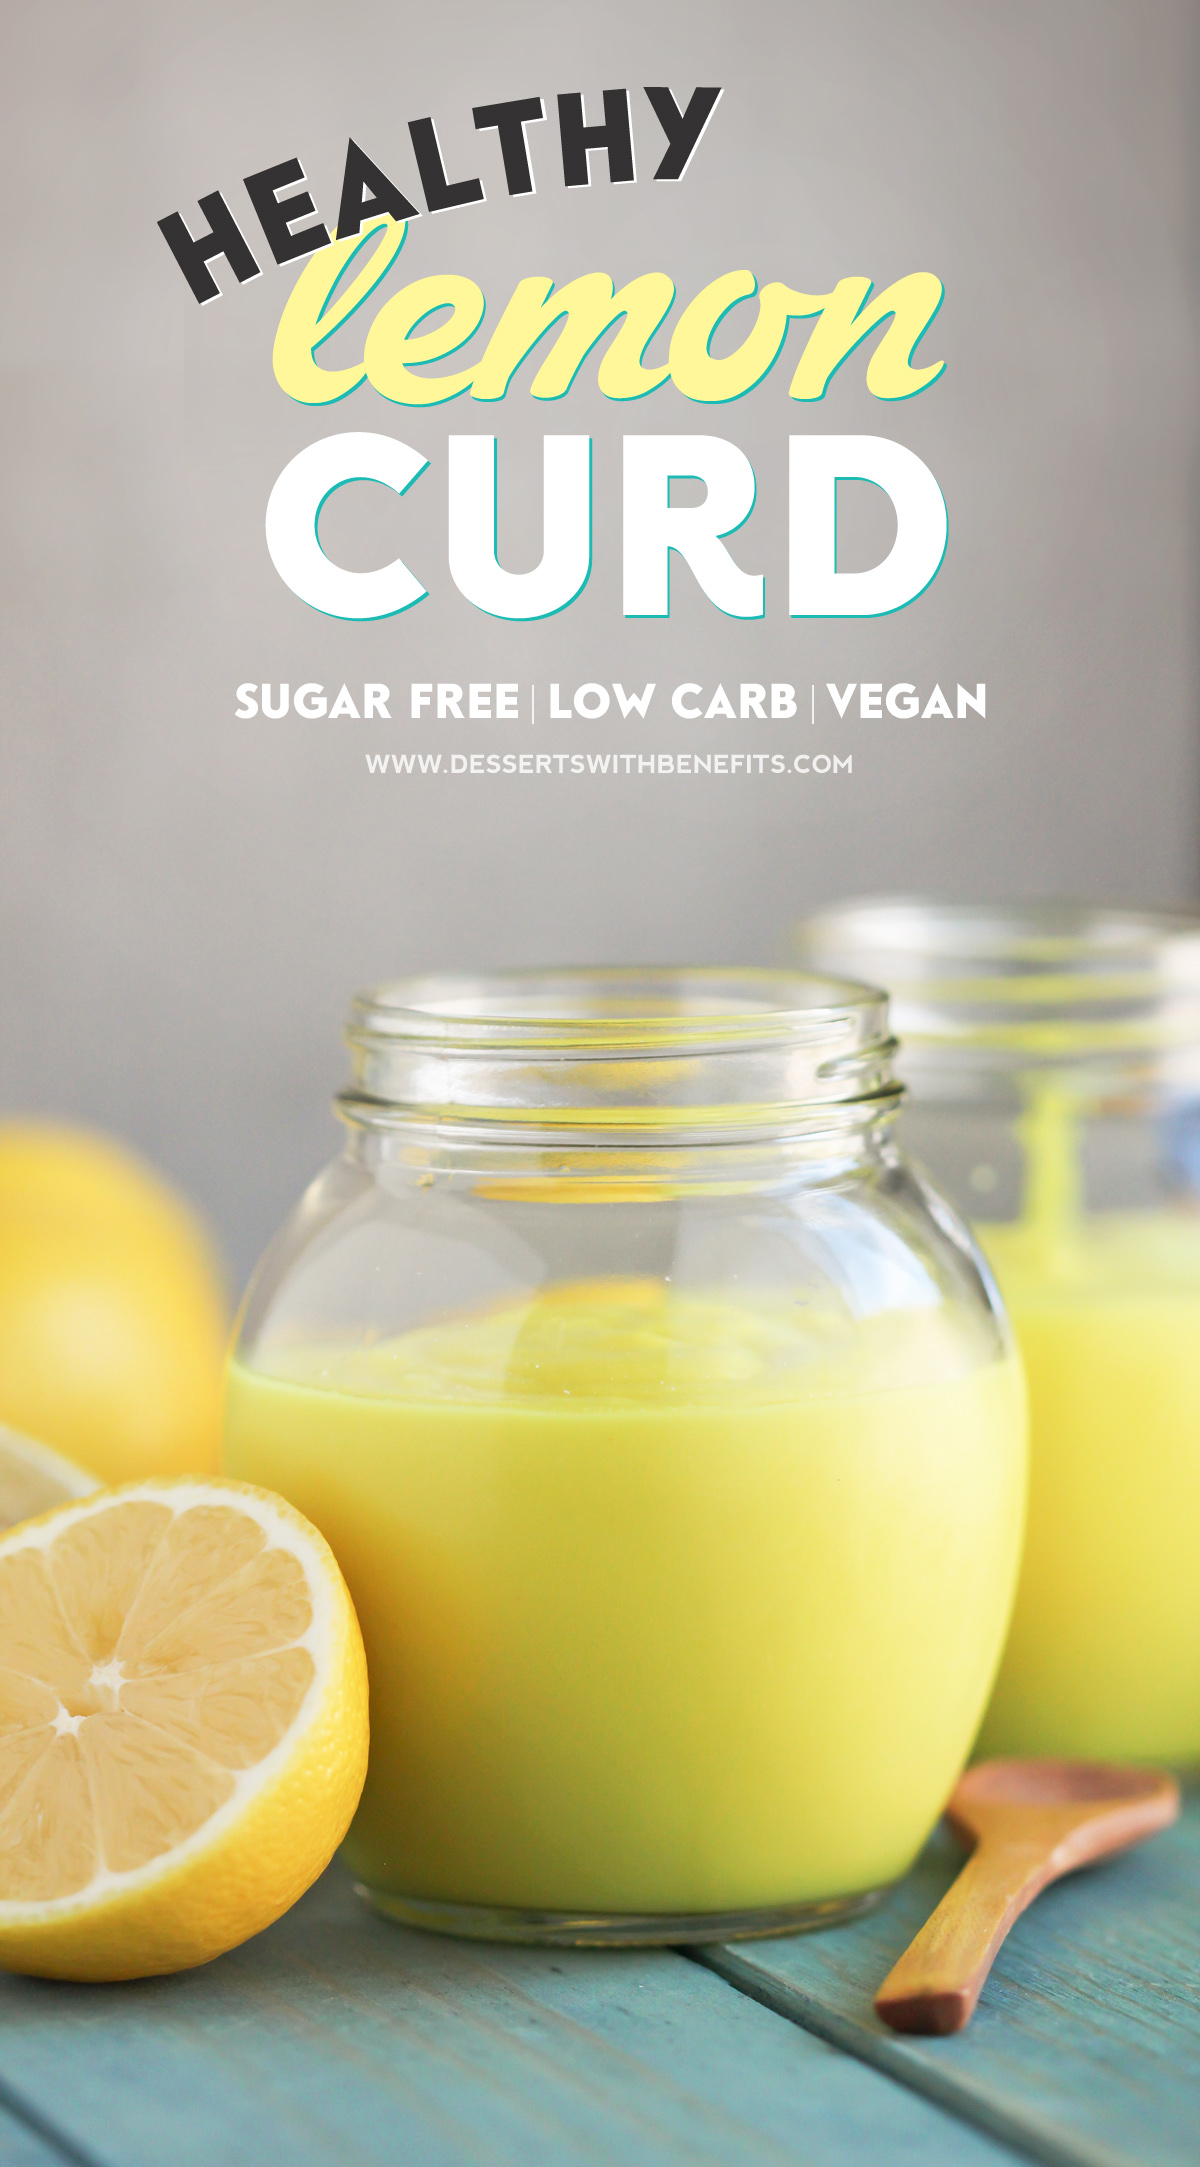 This Healthy Vegan Lemon Curd Recipe is creamy, sweet, tart, and delicious. You'd never know it's sugar free, low carb, gluten free, dairy free, and vegan! Healthy Dessert Recipes at Desserts with Benefits